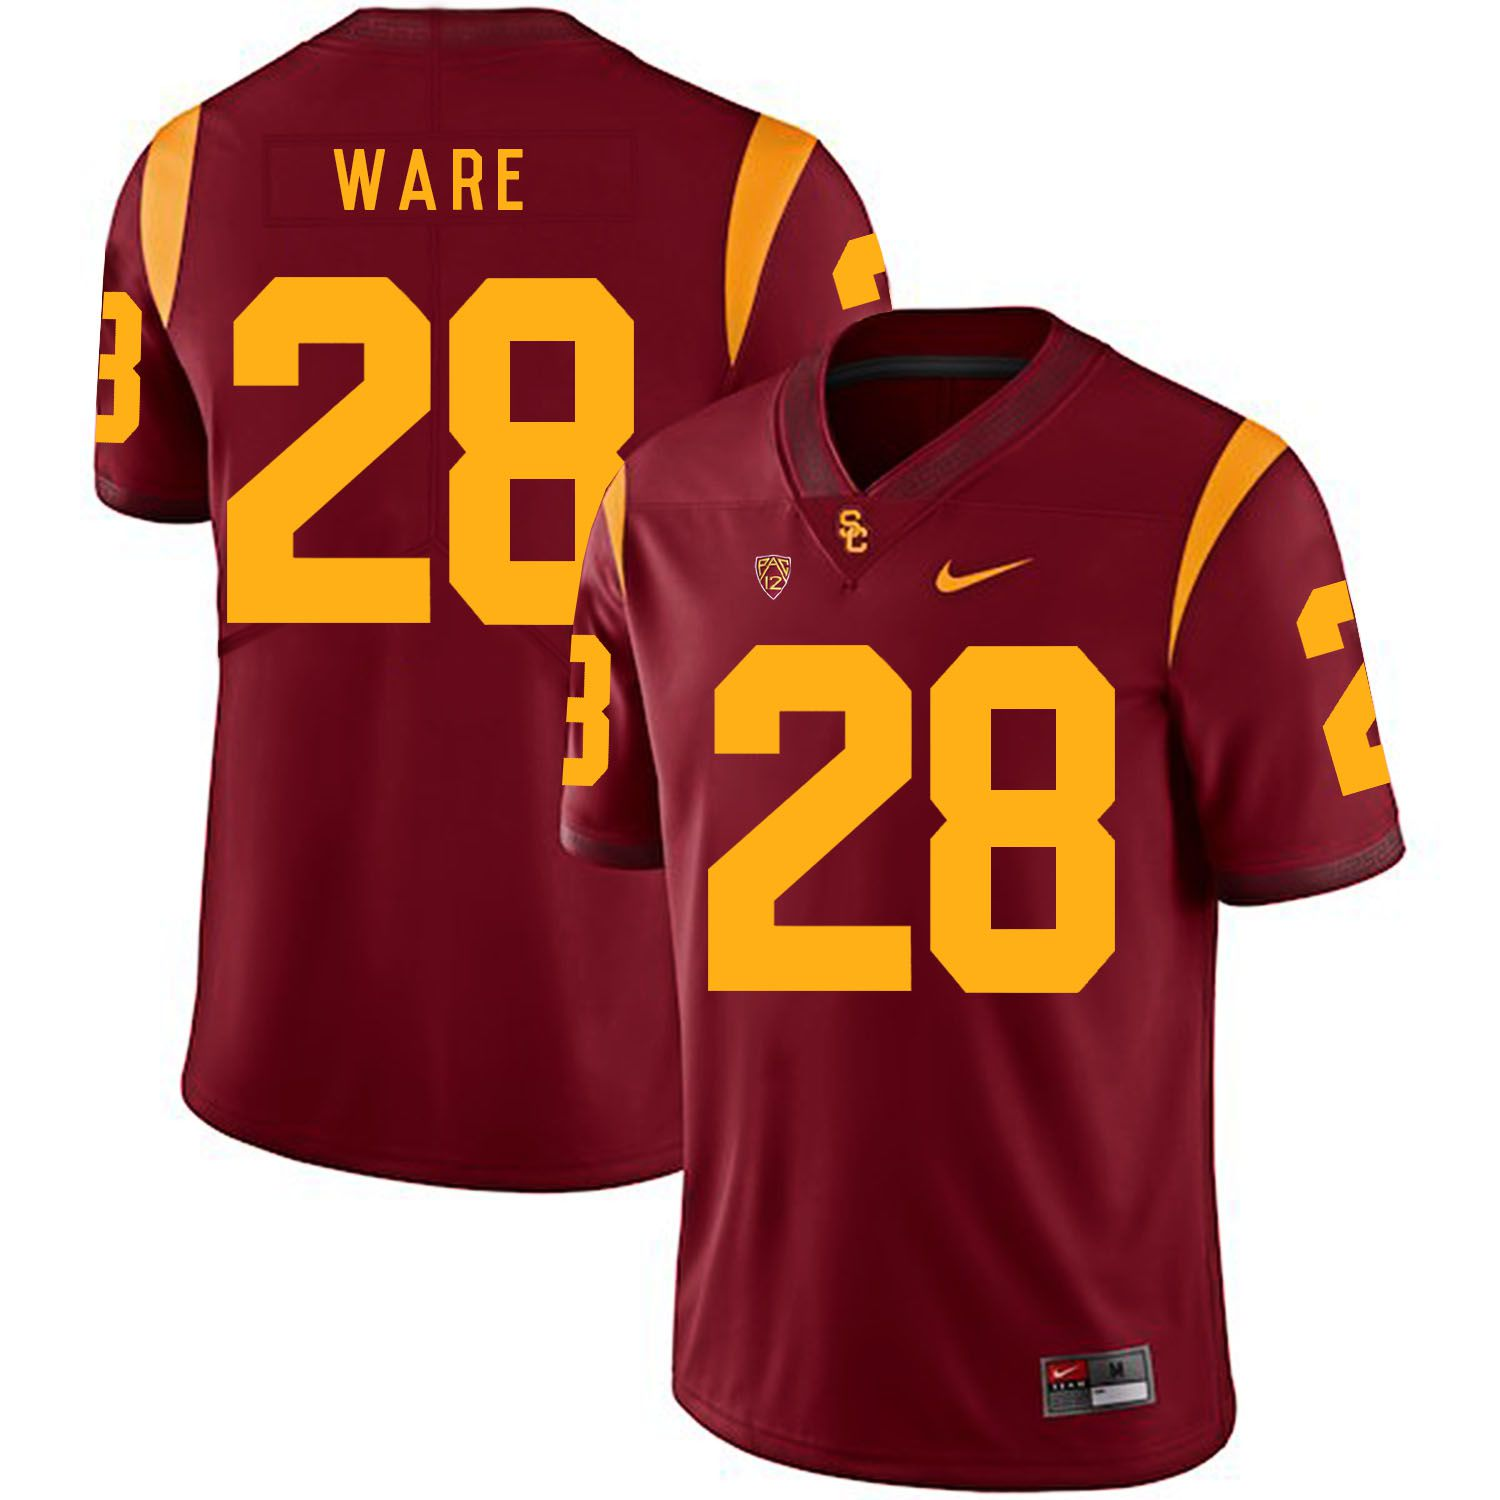 Men USC Trojans 28 Ware Red Customized NCAA Jerseys